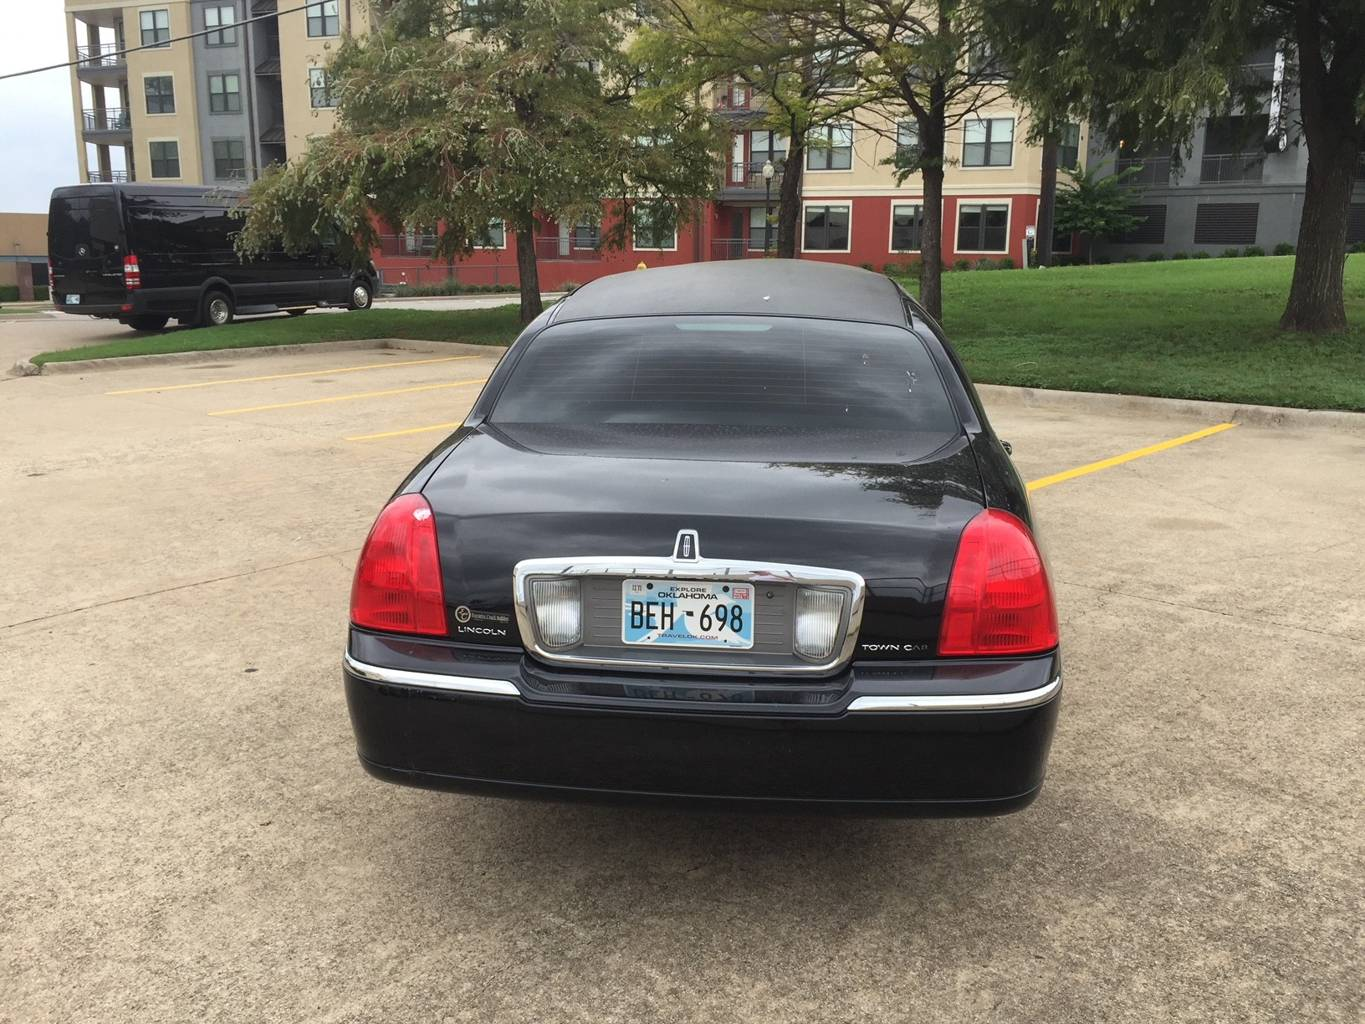 6th Image of a 2007 LINCOLN TOWN CAR EXECUTIVE